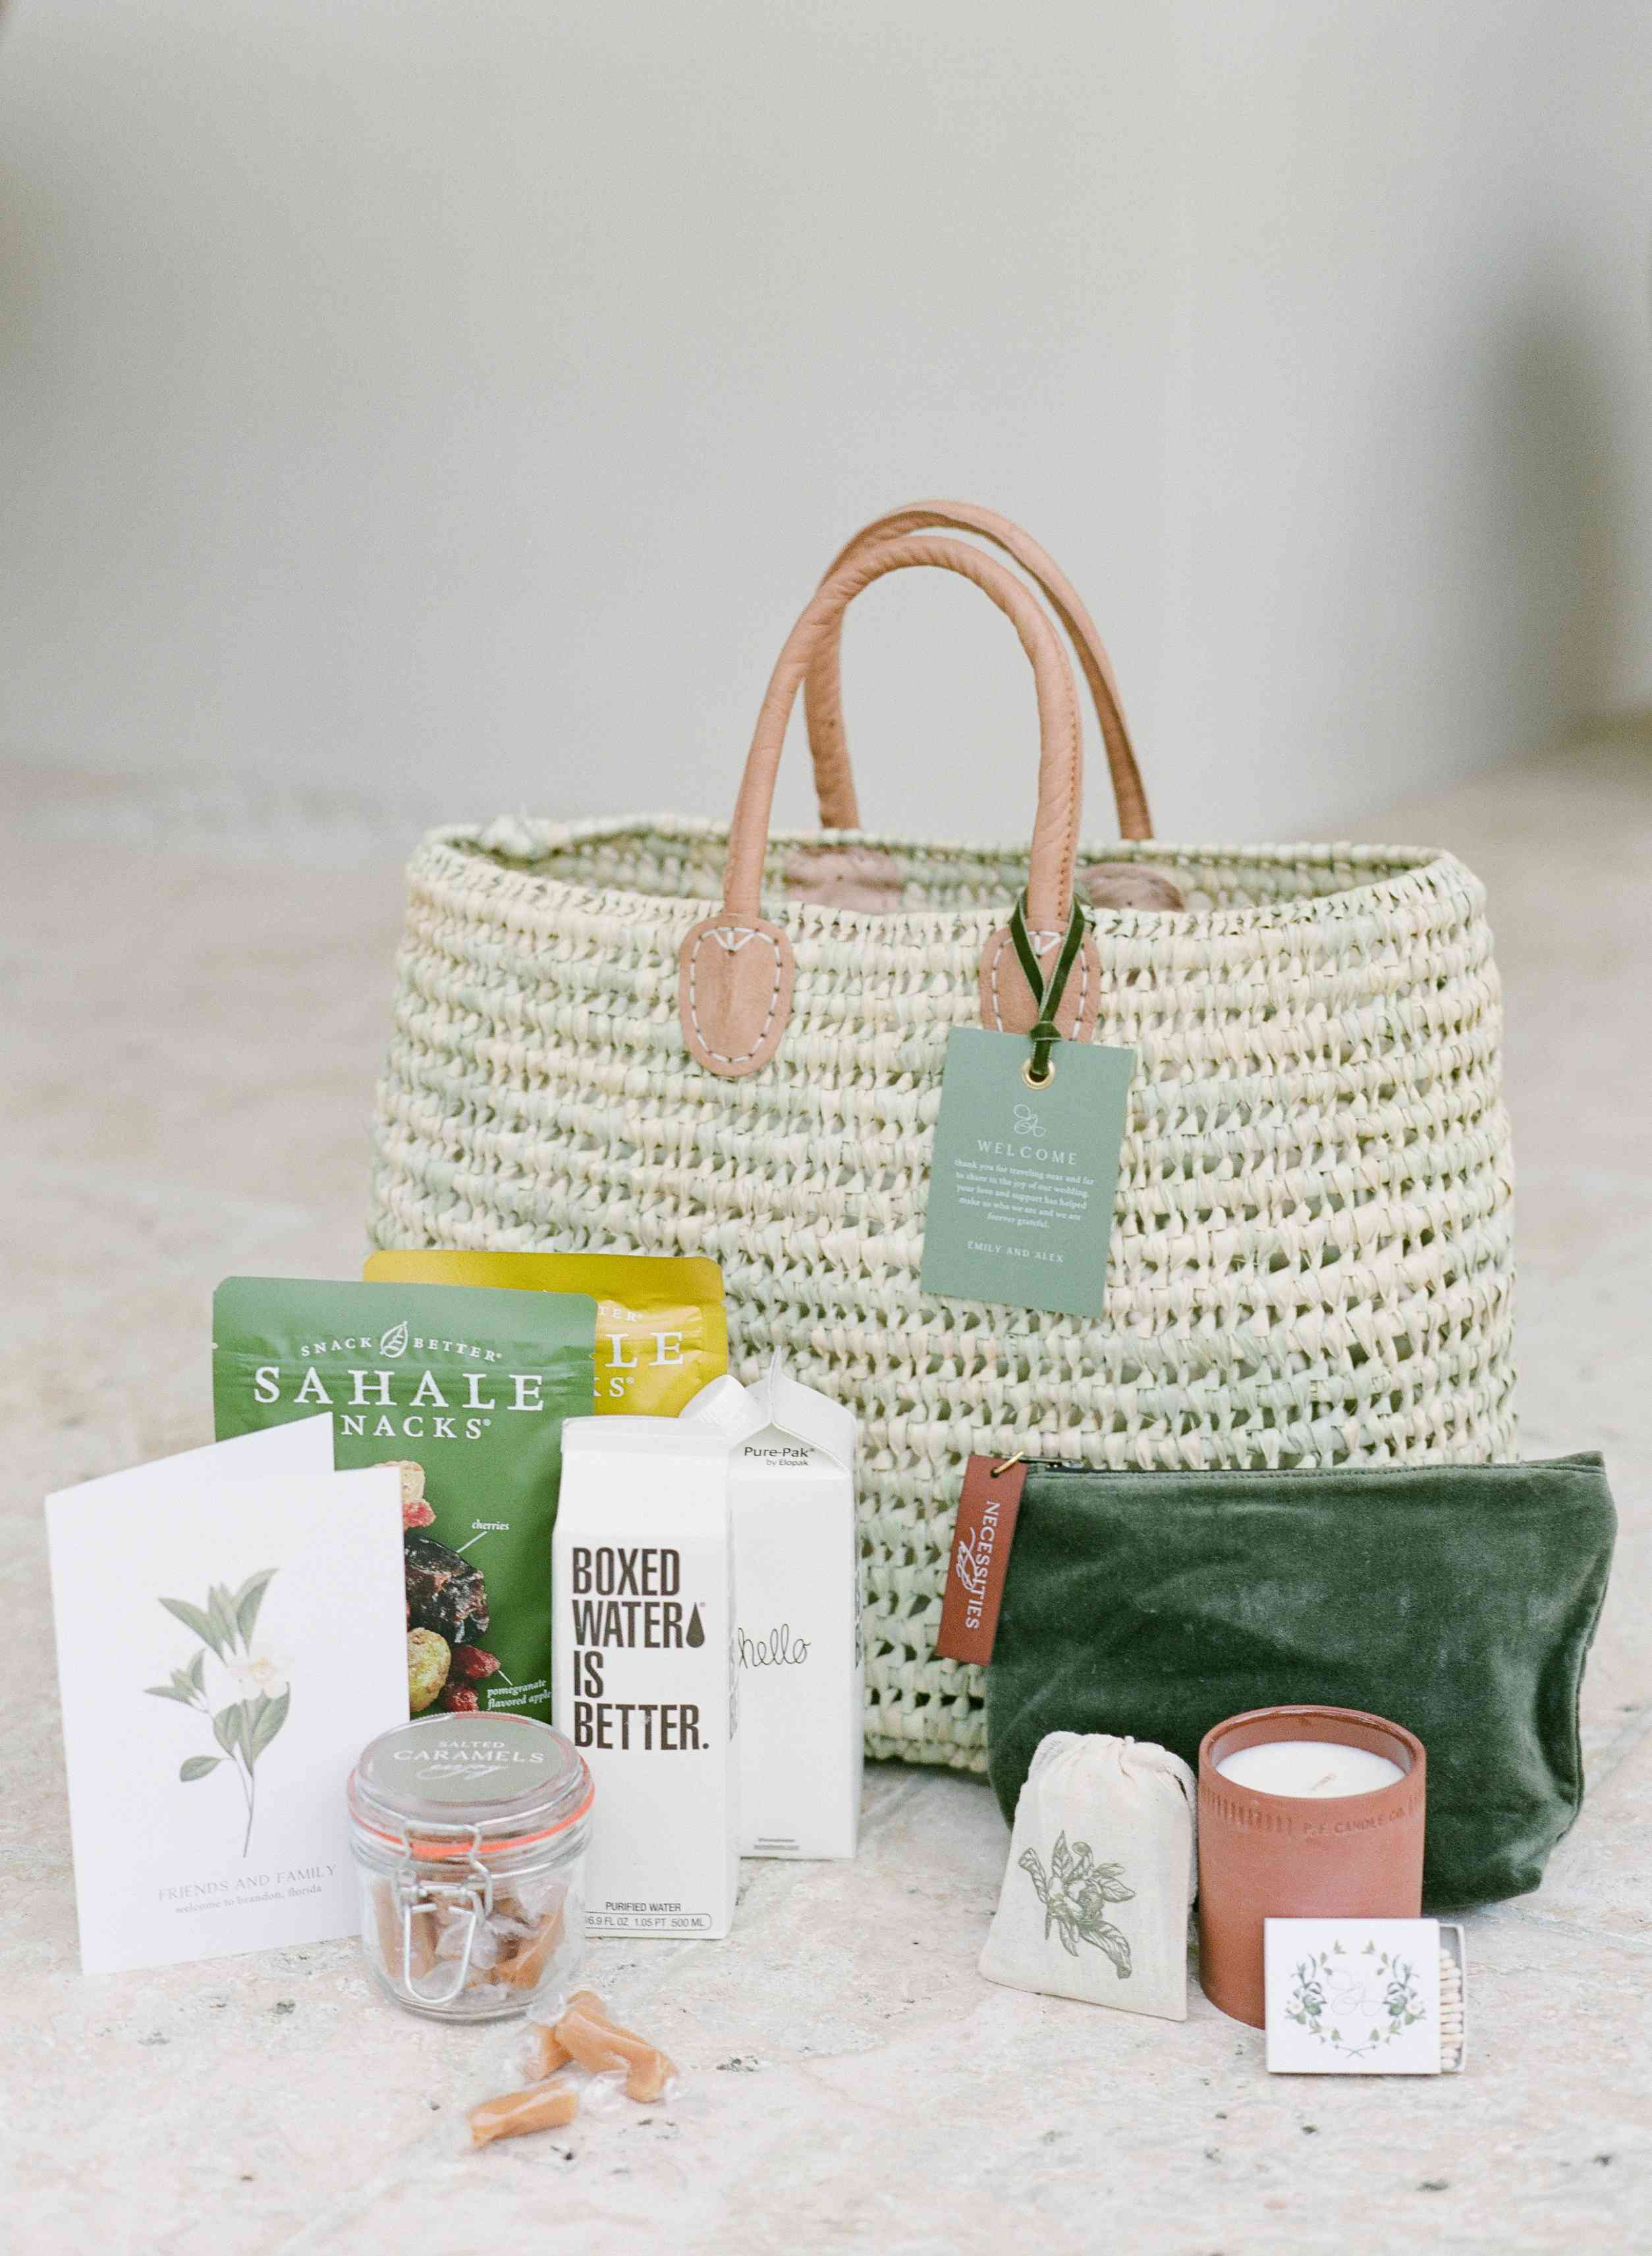 Welcome bag with boxed water, jar of caramels, candle, snacks, and reusable tote bag